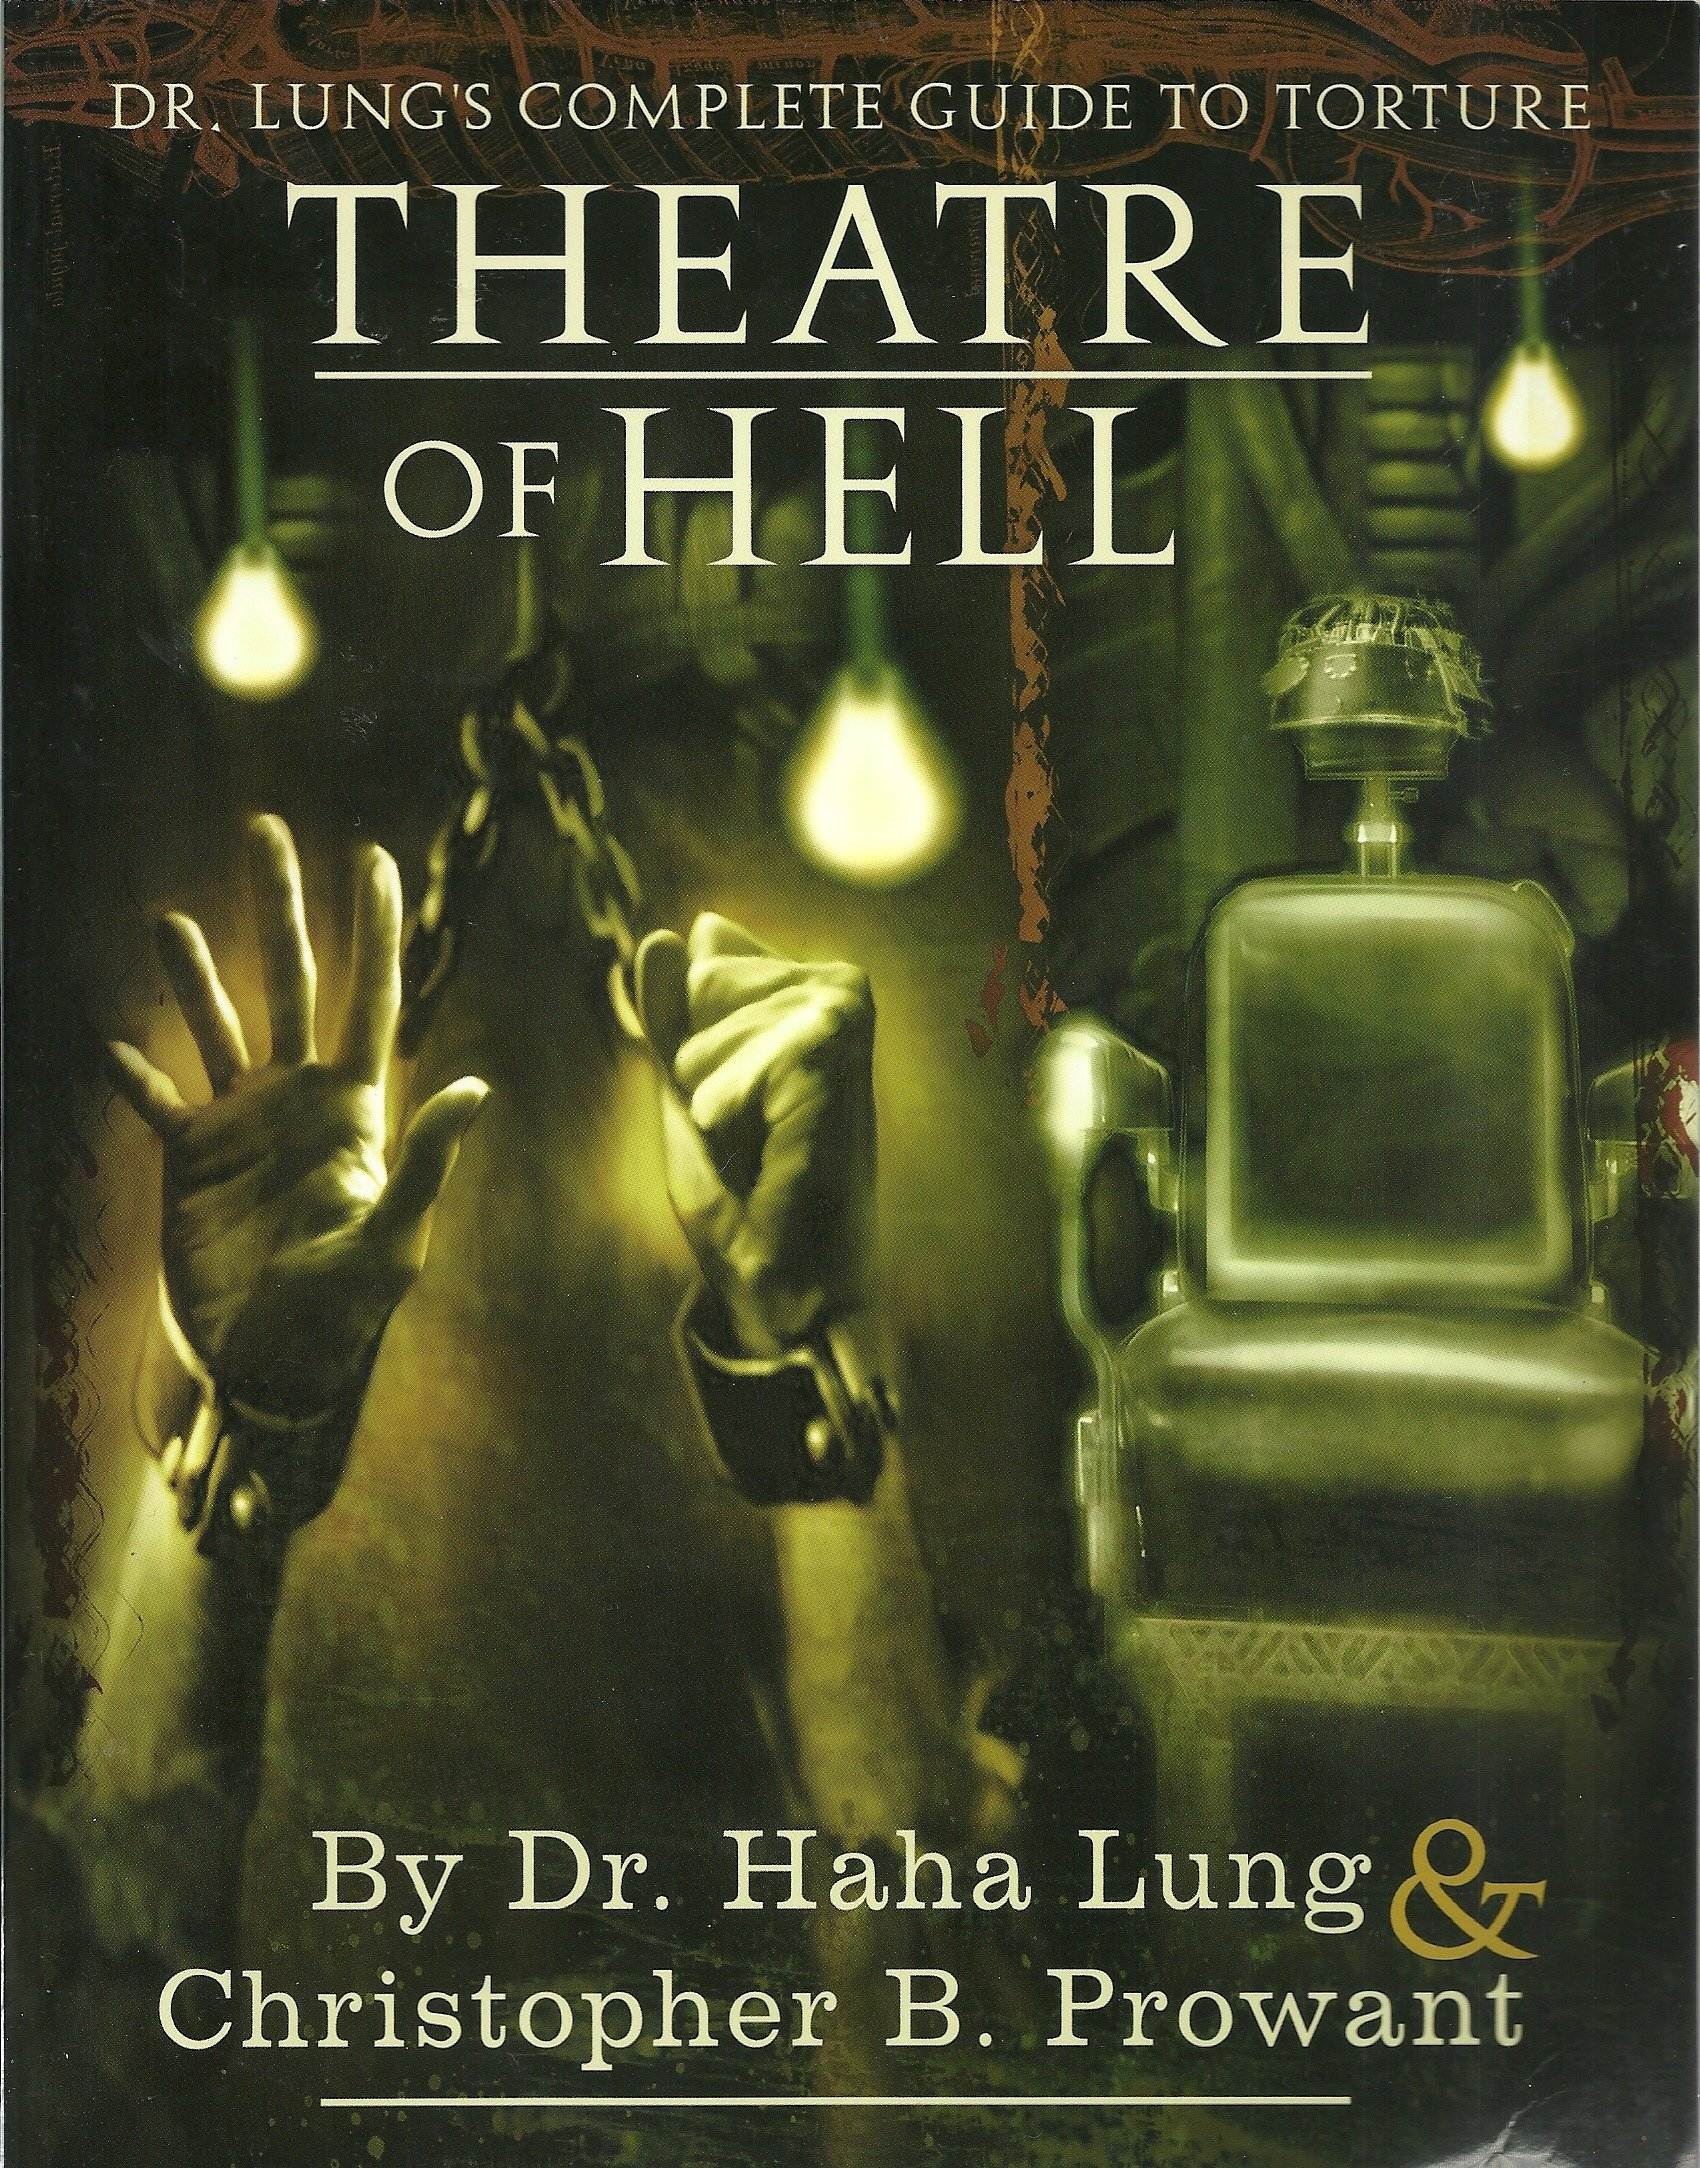 Theatre of Hell : Dr. Lung's Complete Guide to Torture